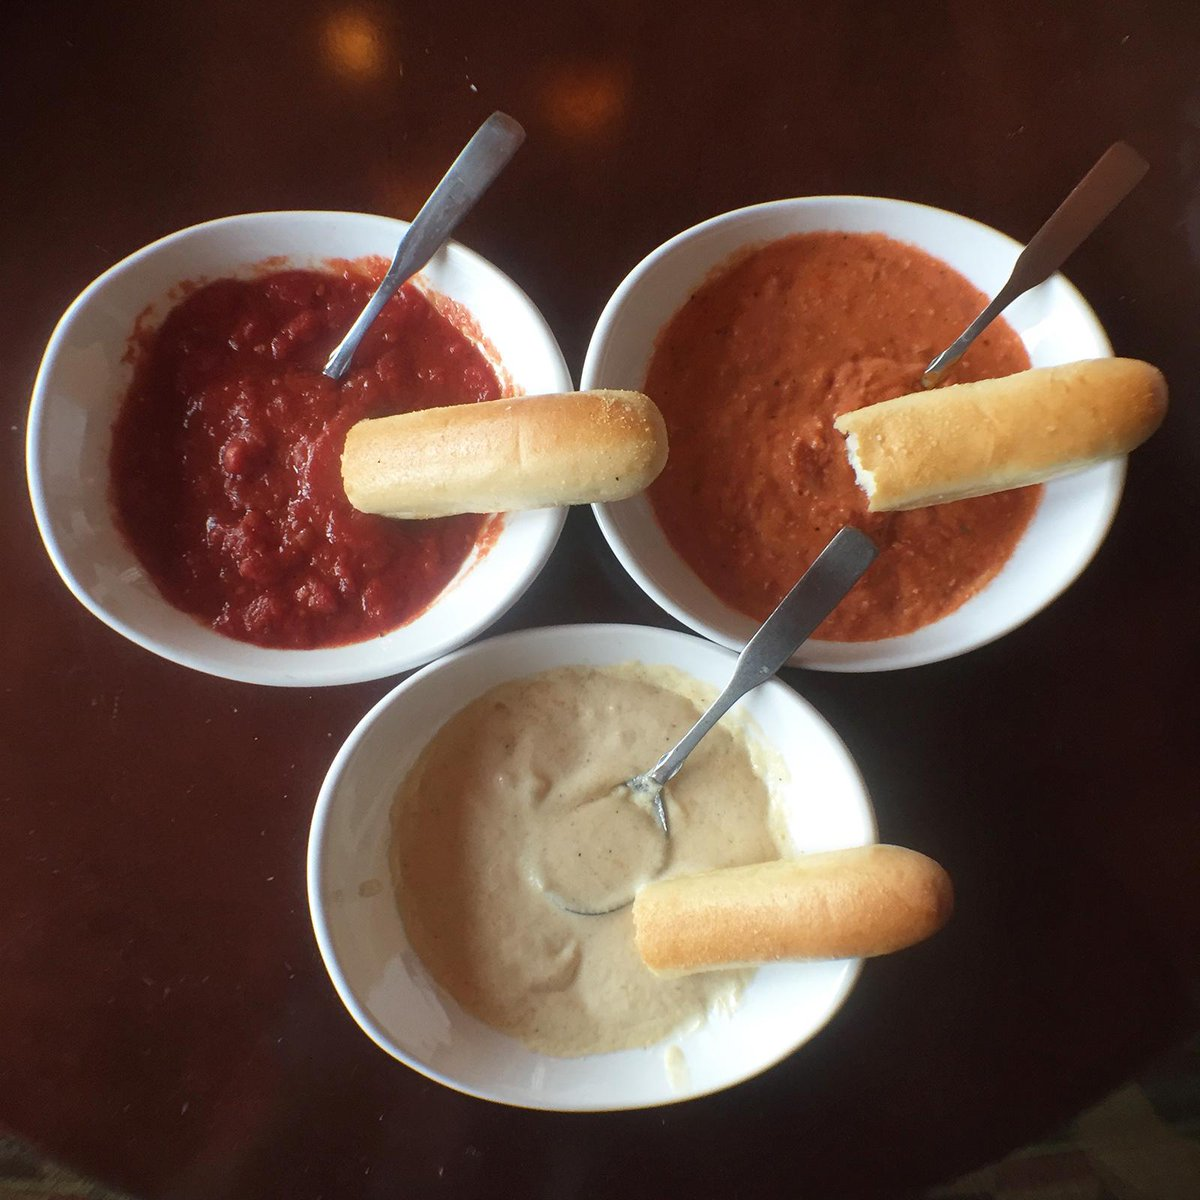 Olive Garden On Twitter Marinara Alfredo Or Five Cheese Marinara What 39 S Your Fav Breadstick